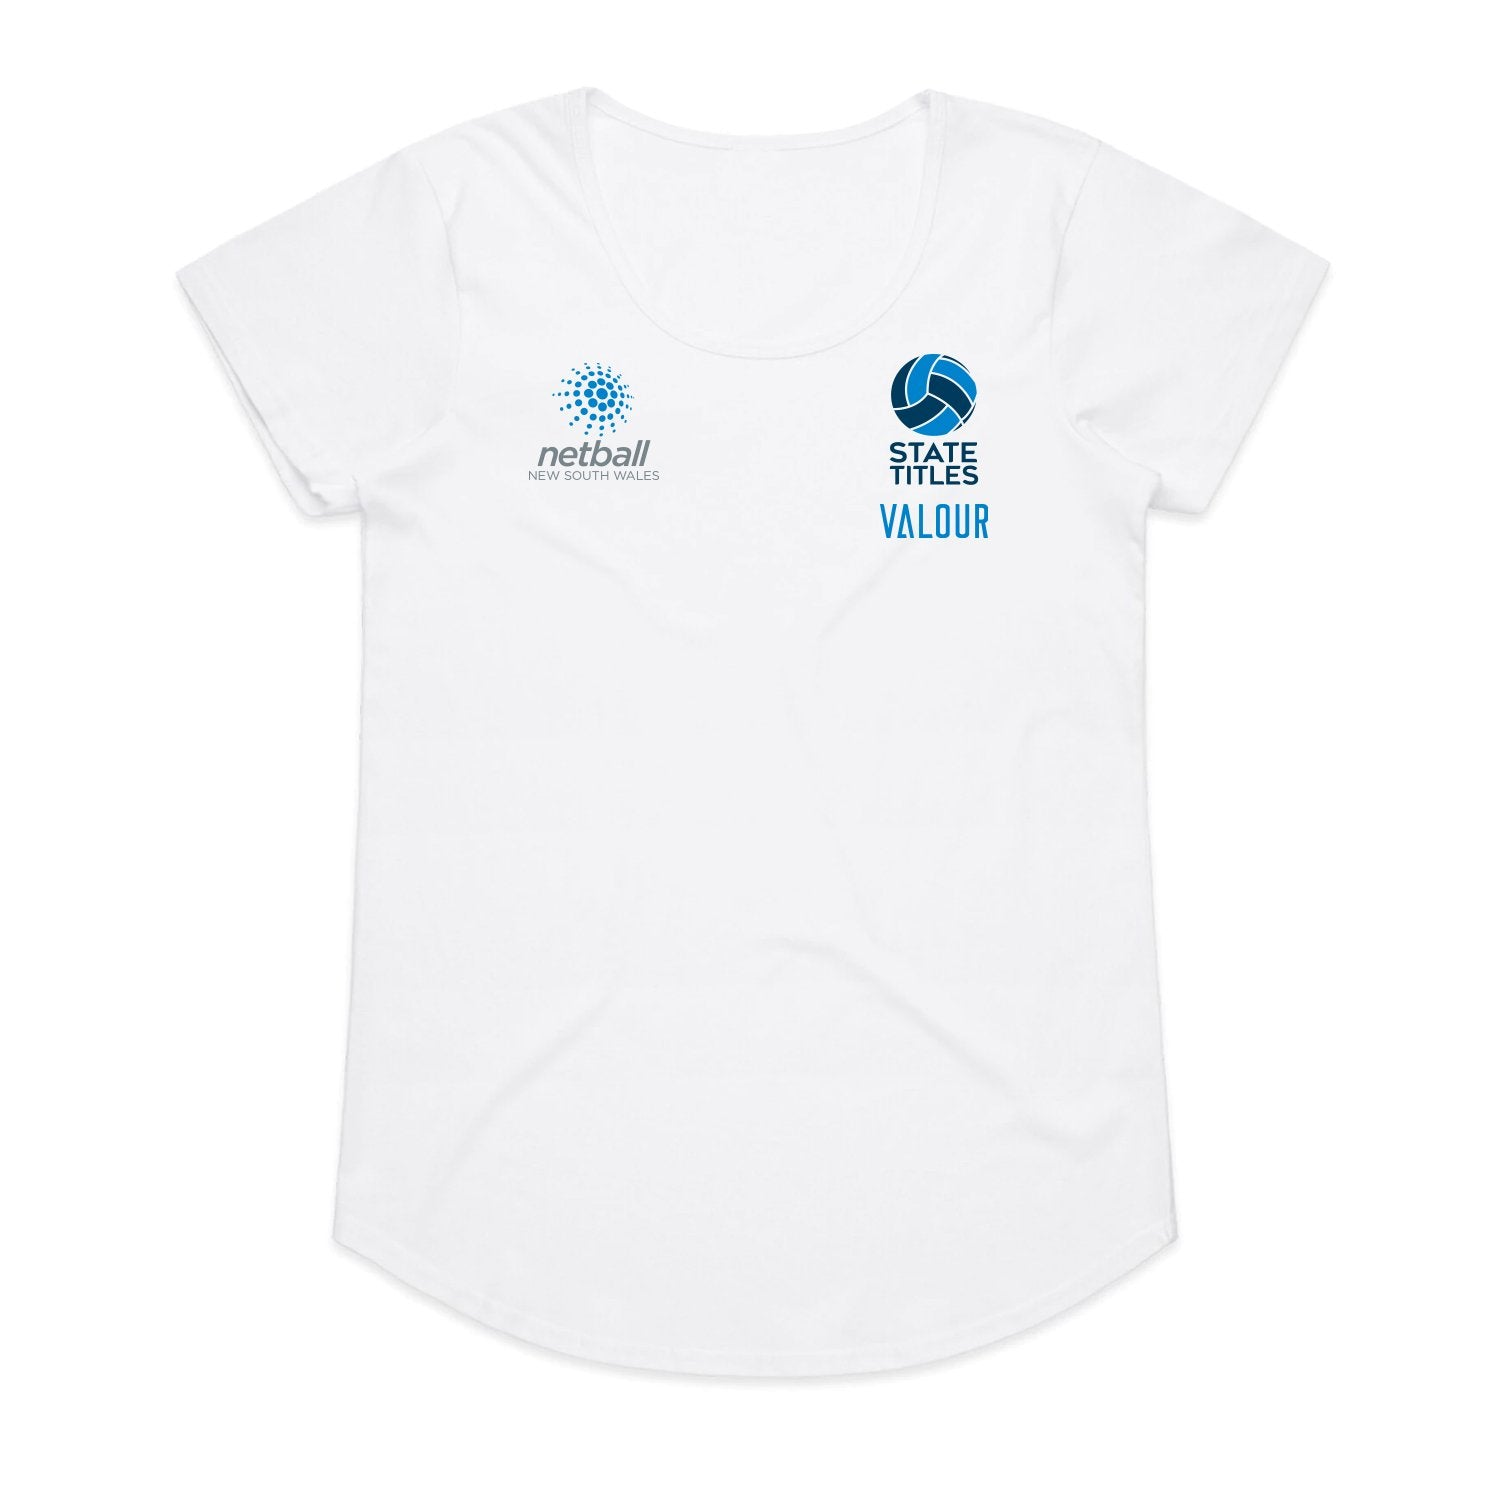 Netball NSW State Titles Fashion Tee